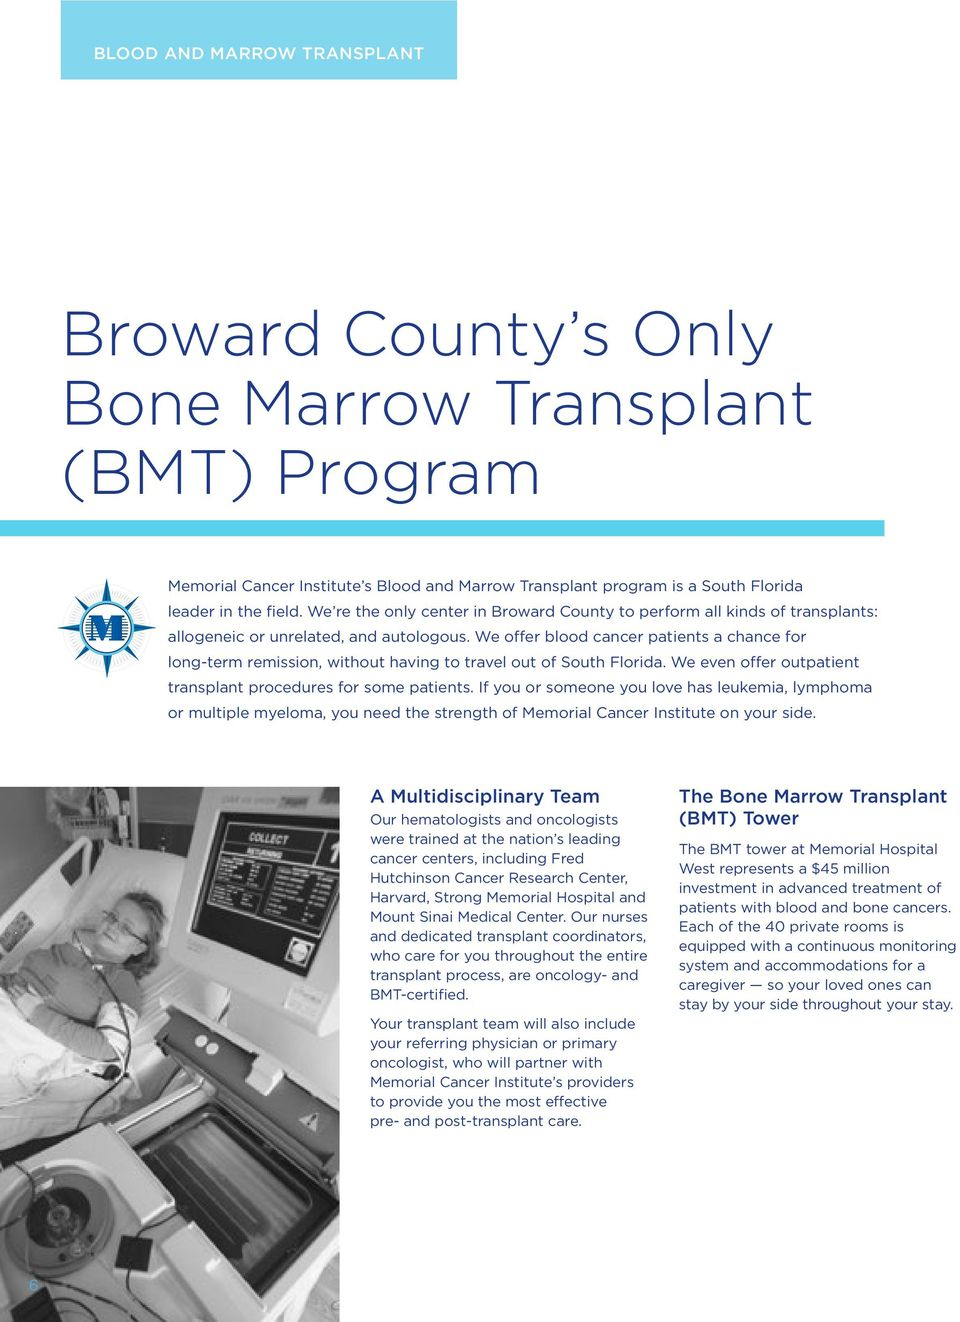 We offer blood cancer patients a chance for long-term remission, without having to travel out of South Florida. We even offer outpatient transplant procedures for some patients.